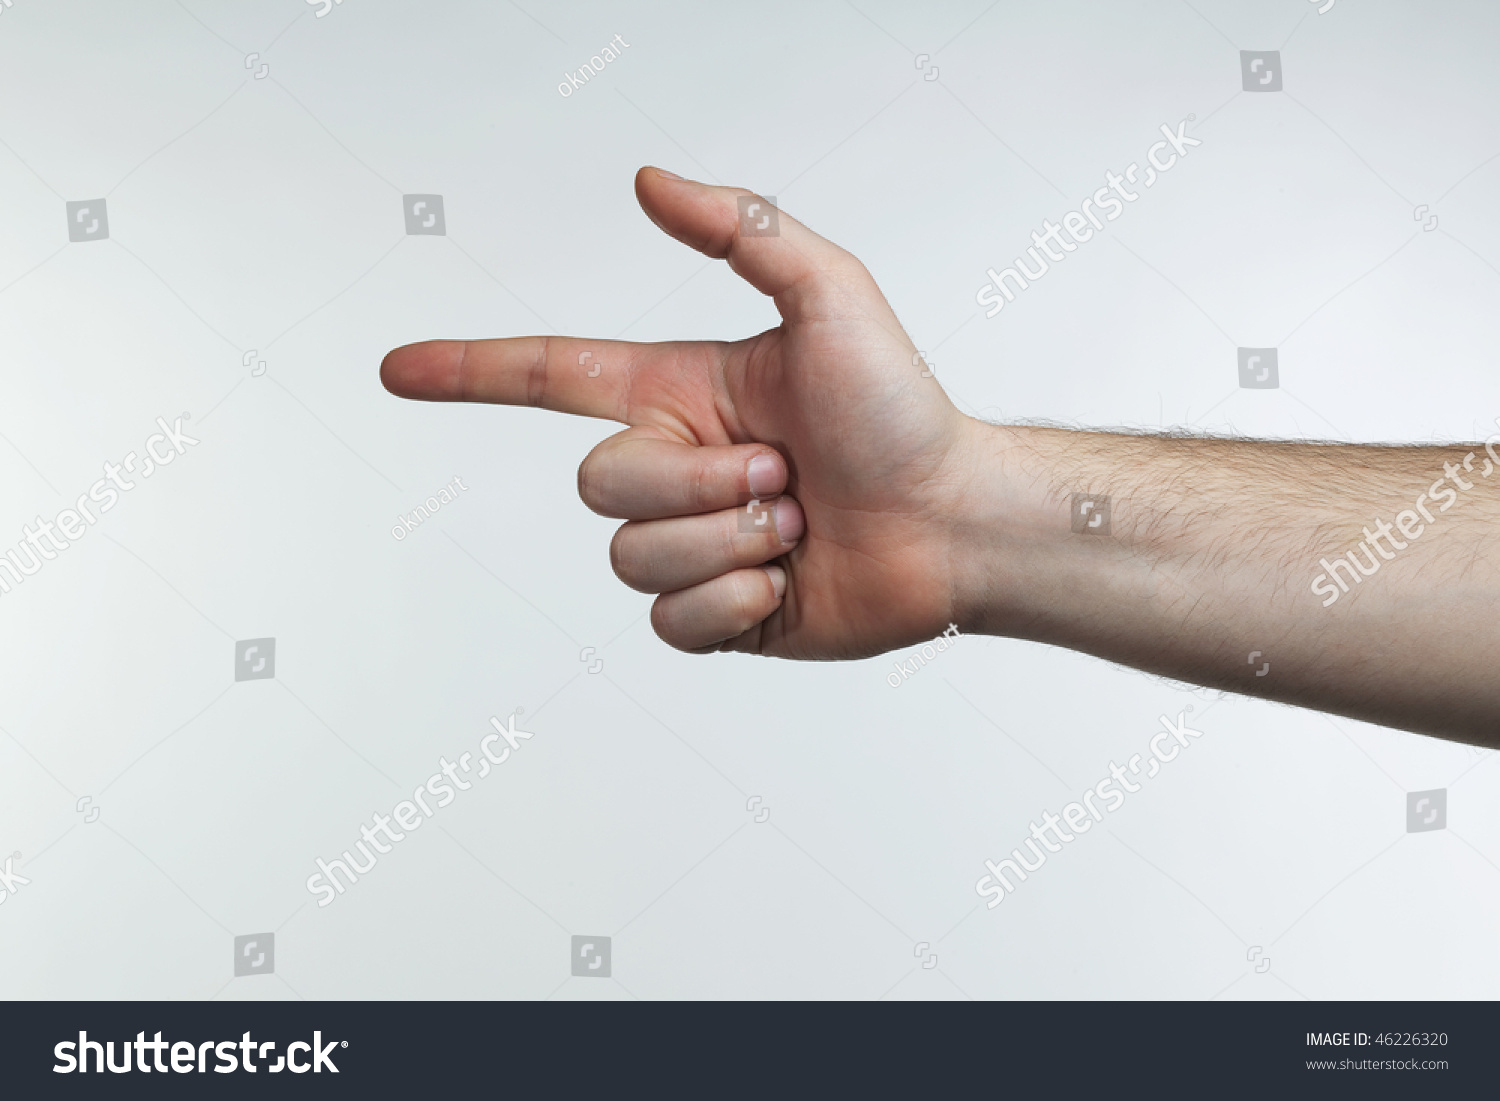 Man'S Hand Pointing Fingers In A Shape Of A Gun Stock ...